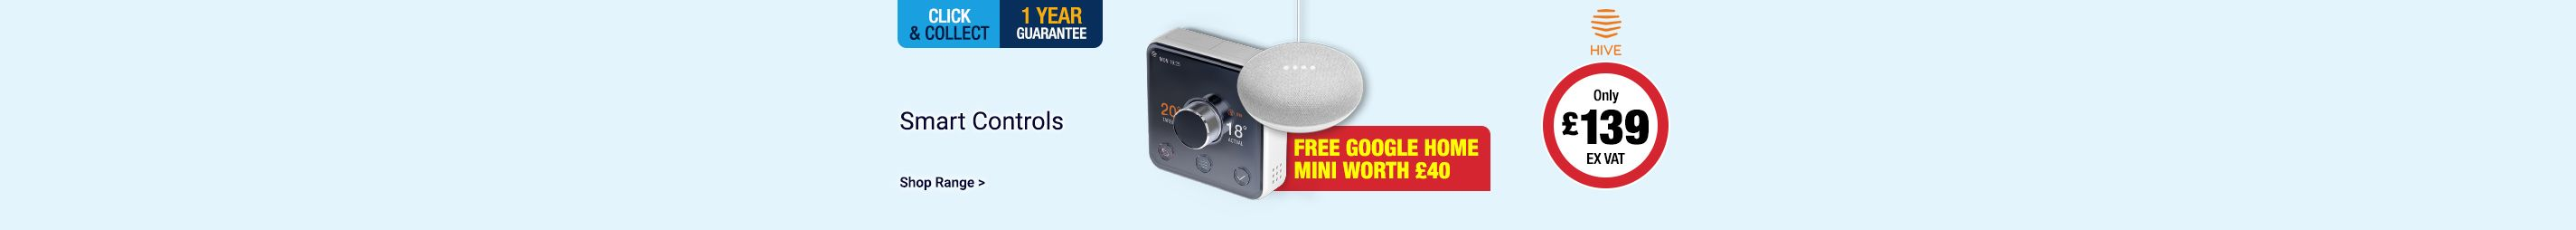 Free Google Home Mini with Hive